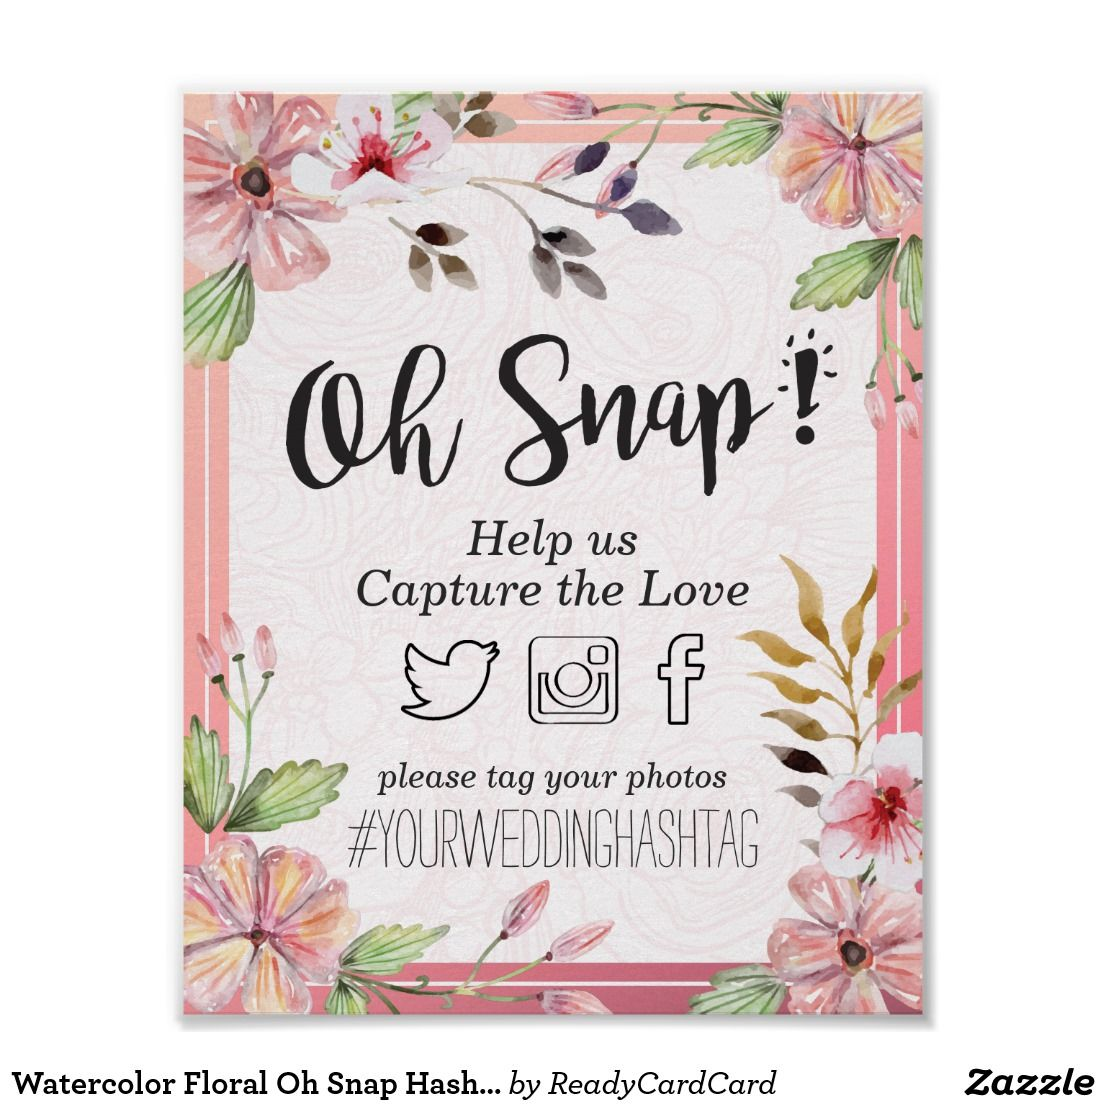 Watercolor Floral Oh Snap Hashtag Wedding Decor Poster | Bridal ...